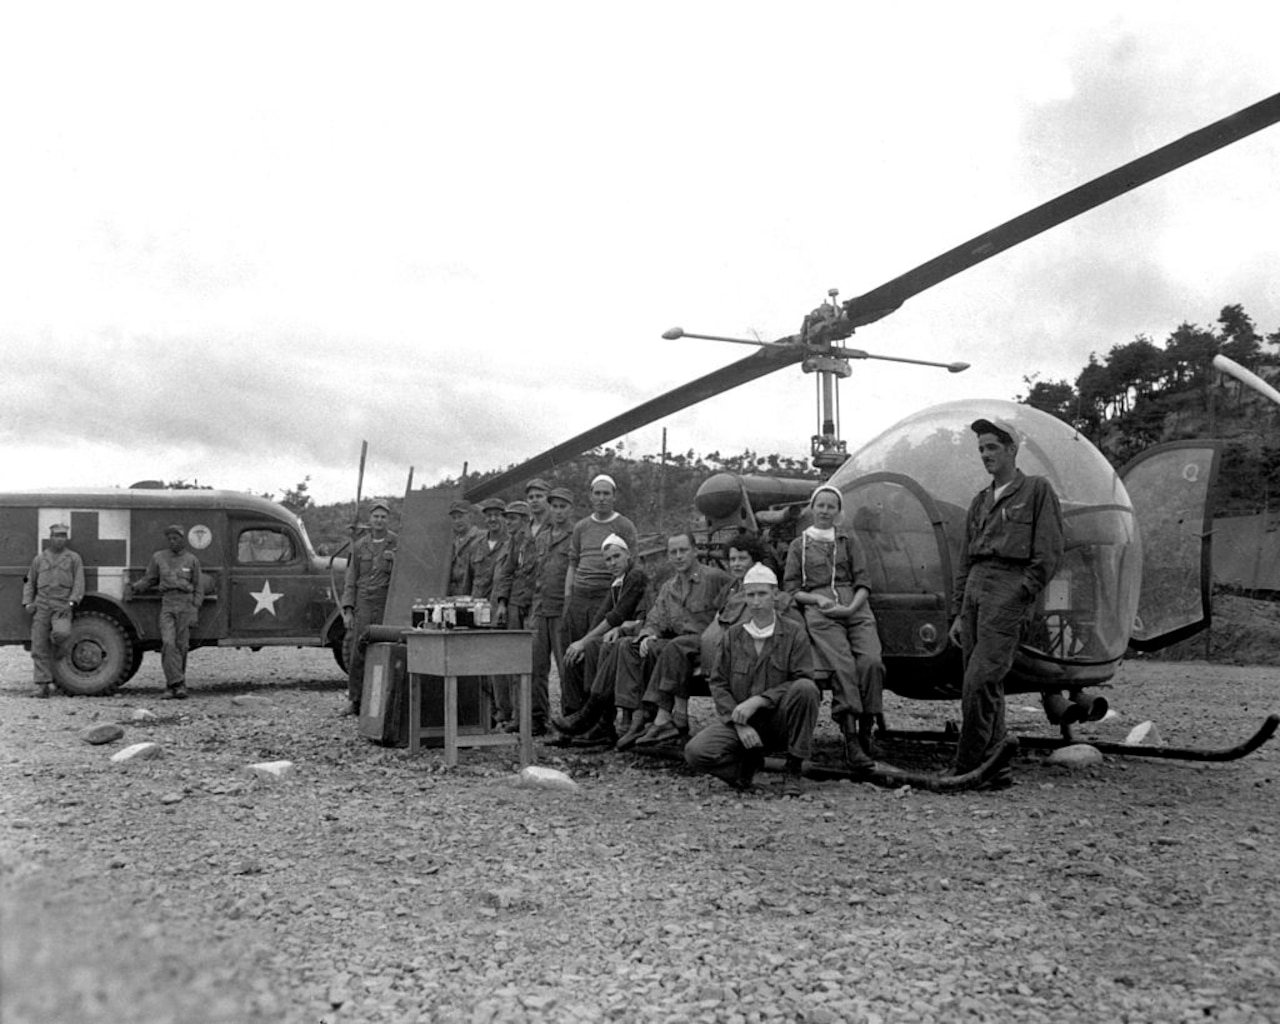 People pose for a photo in front of a helicopter.